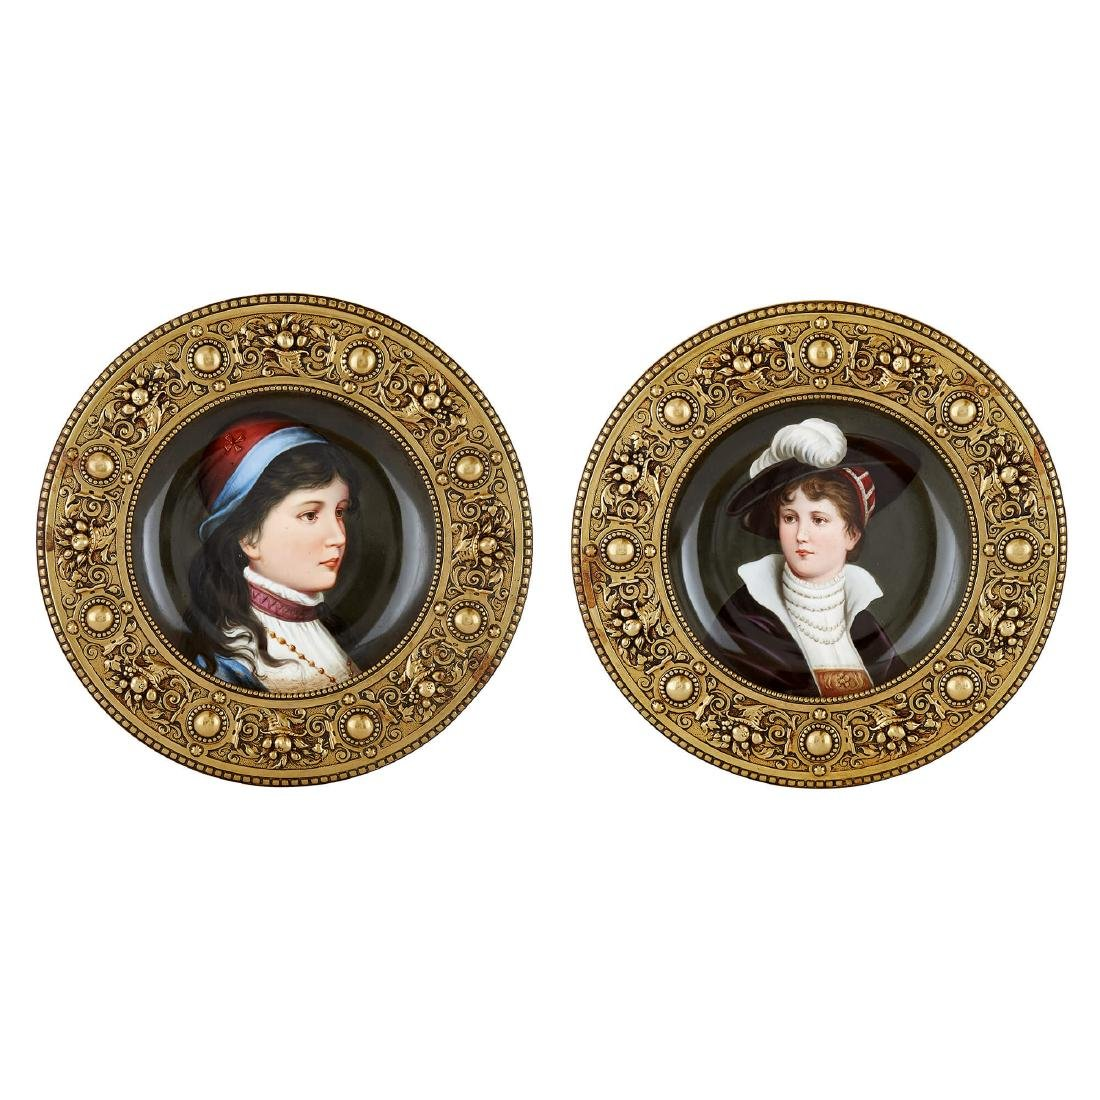 TWO AUSTRIAN CIRCULAR PAINTED PLAQUES IN BRASS FRAMES